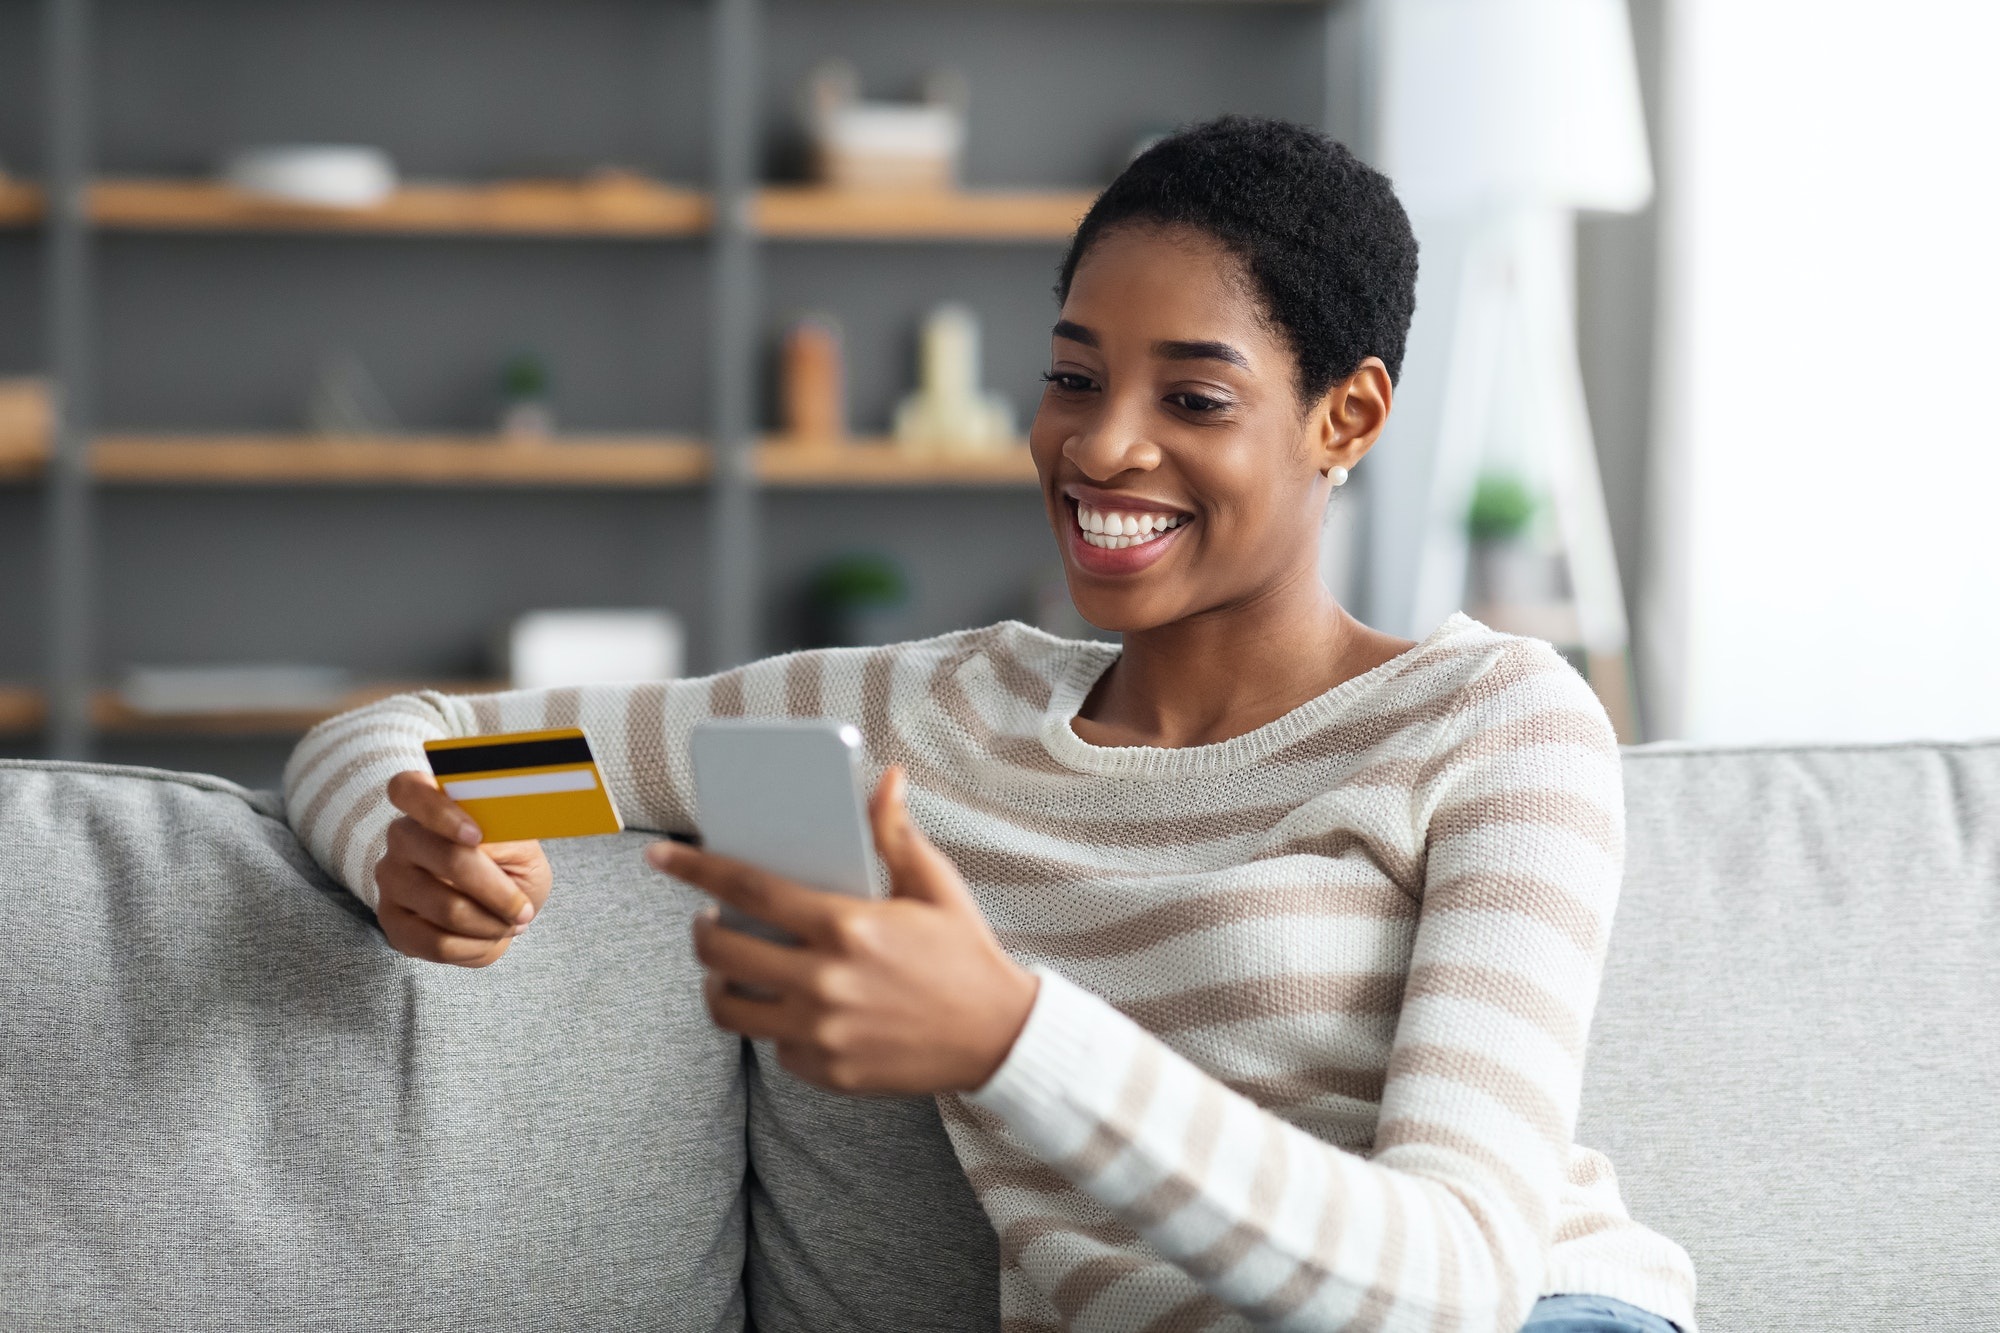 Fast Money Transfers. Smiling Black Female With Smartphone And Credit Card